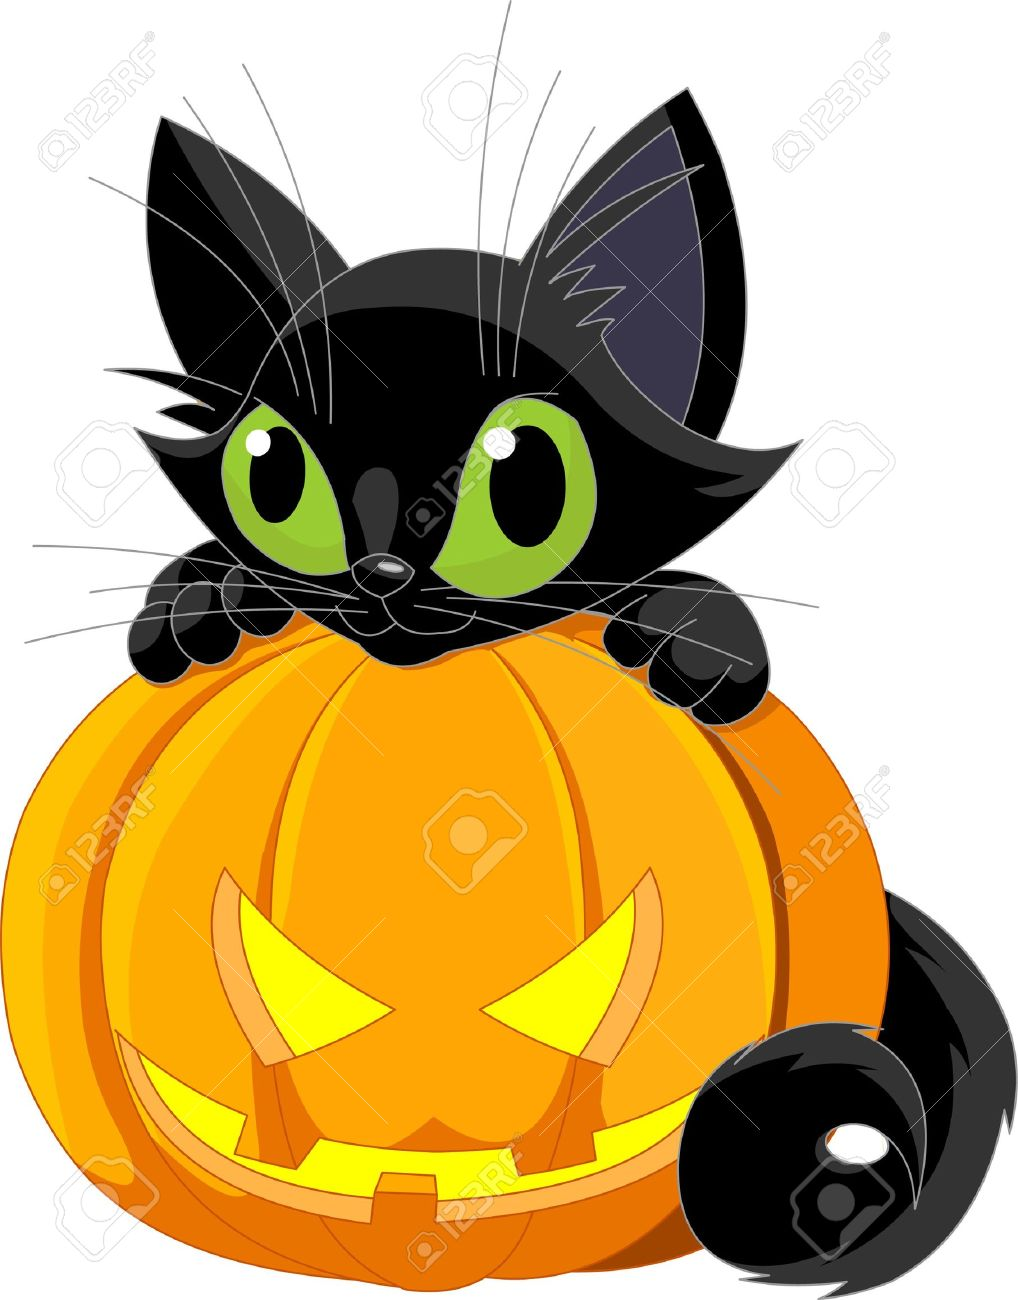 Delightful A Cute Black Cat On A Halloween Pumpkin. Stock Vector   7879532